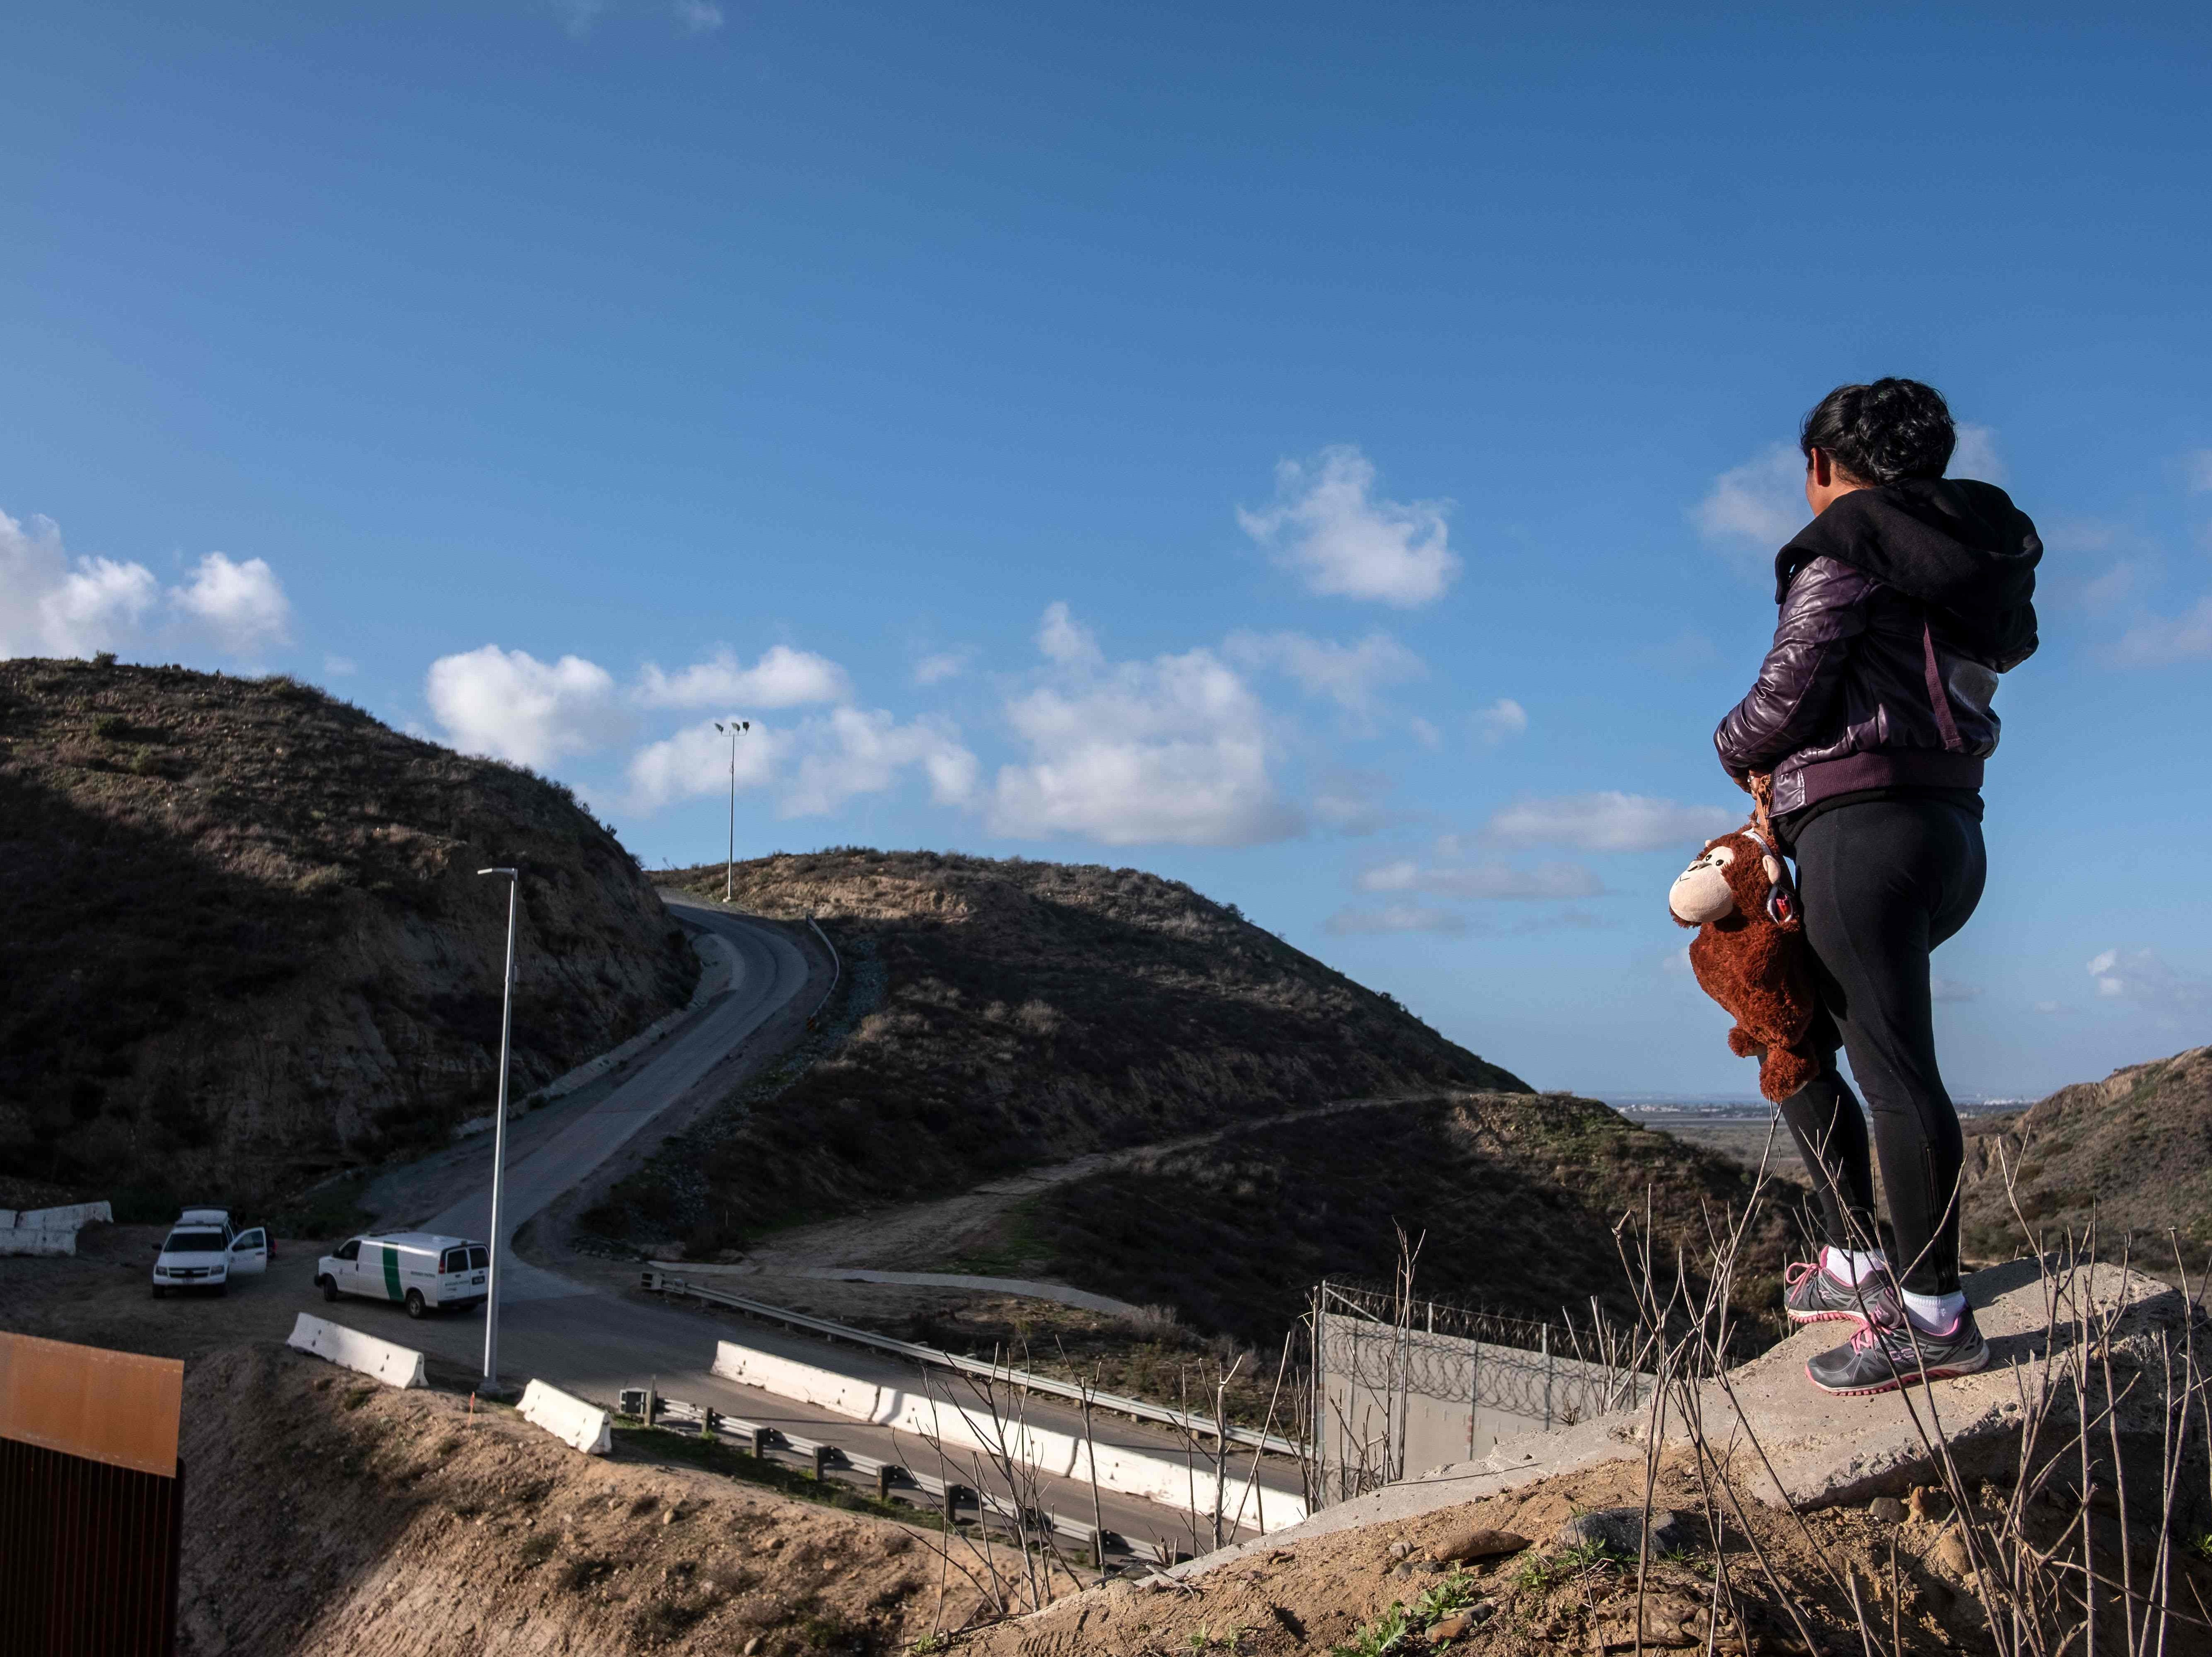 """A Central American migrant stands on the US-Mexico border fence as some try to cross from Tijuana in Mexico to San Diego County in the US, as seen from Tijuana, Baja California State, Mexico, on Dec. 27, 2018.  America's border security head warned Wednesday officials were overwhelmed by the """"enormous flow"""" of families crossing from Mexico, appealing for federal health care funding after the second child in a month died in custody."""